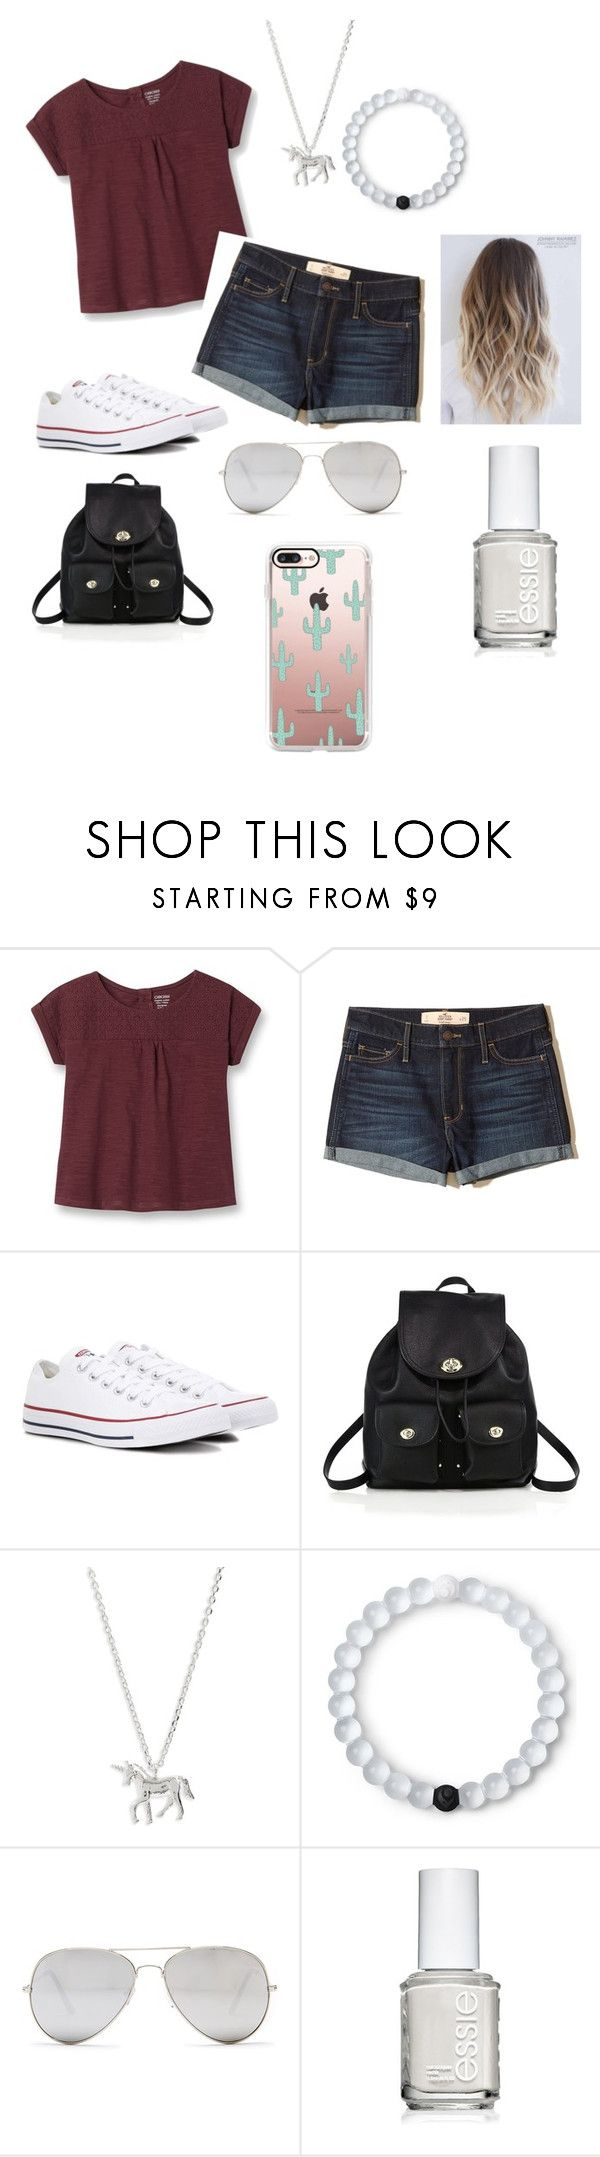 """Annie LeBlanc"" by egm72035 ❤ liked on Polyvore featuring Hollister Co., Converse, Coach, Estella Bartlett, Lokai, Sunny Rebel, Essie and Casetify"